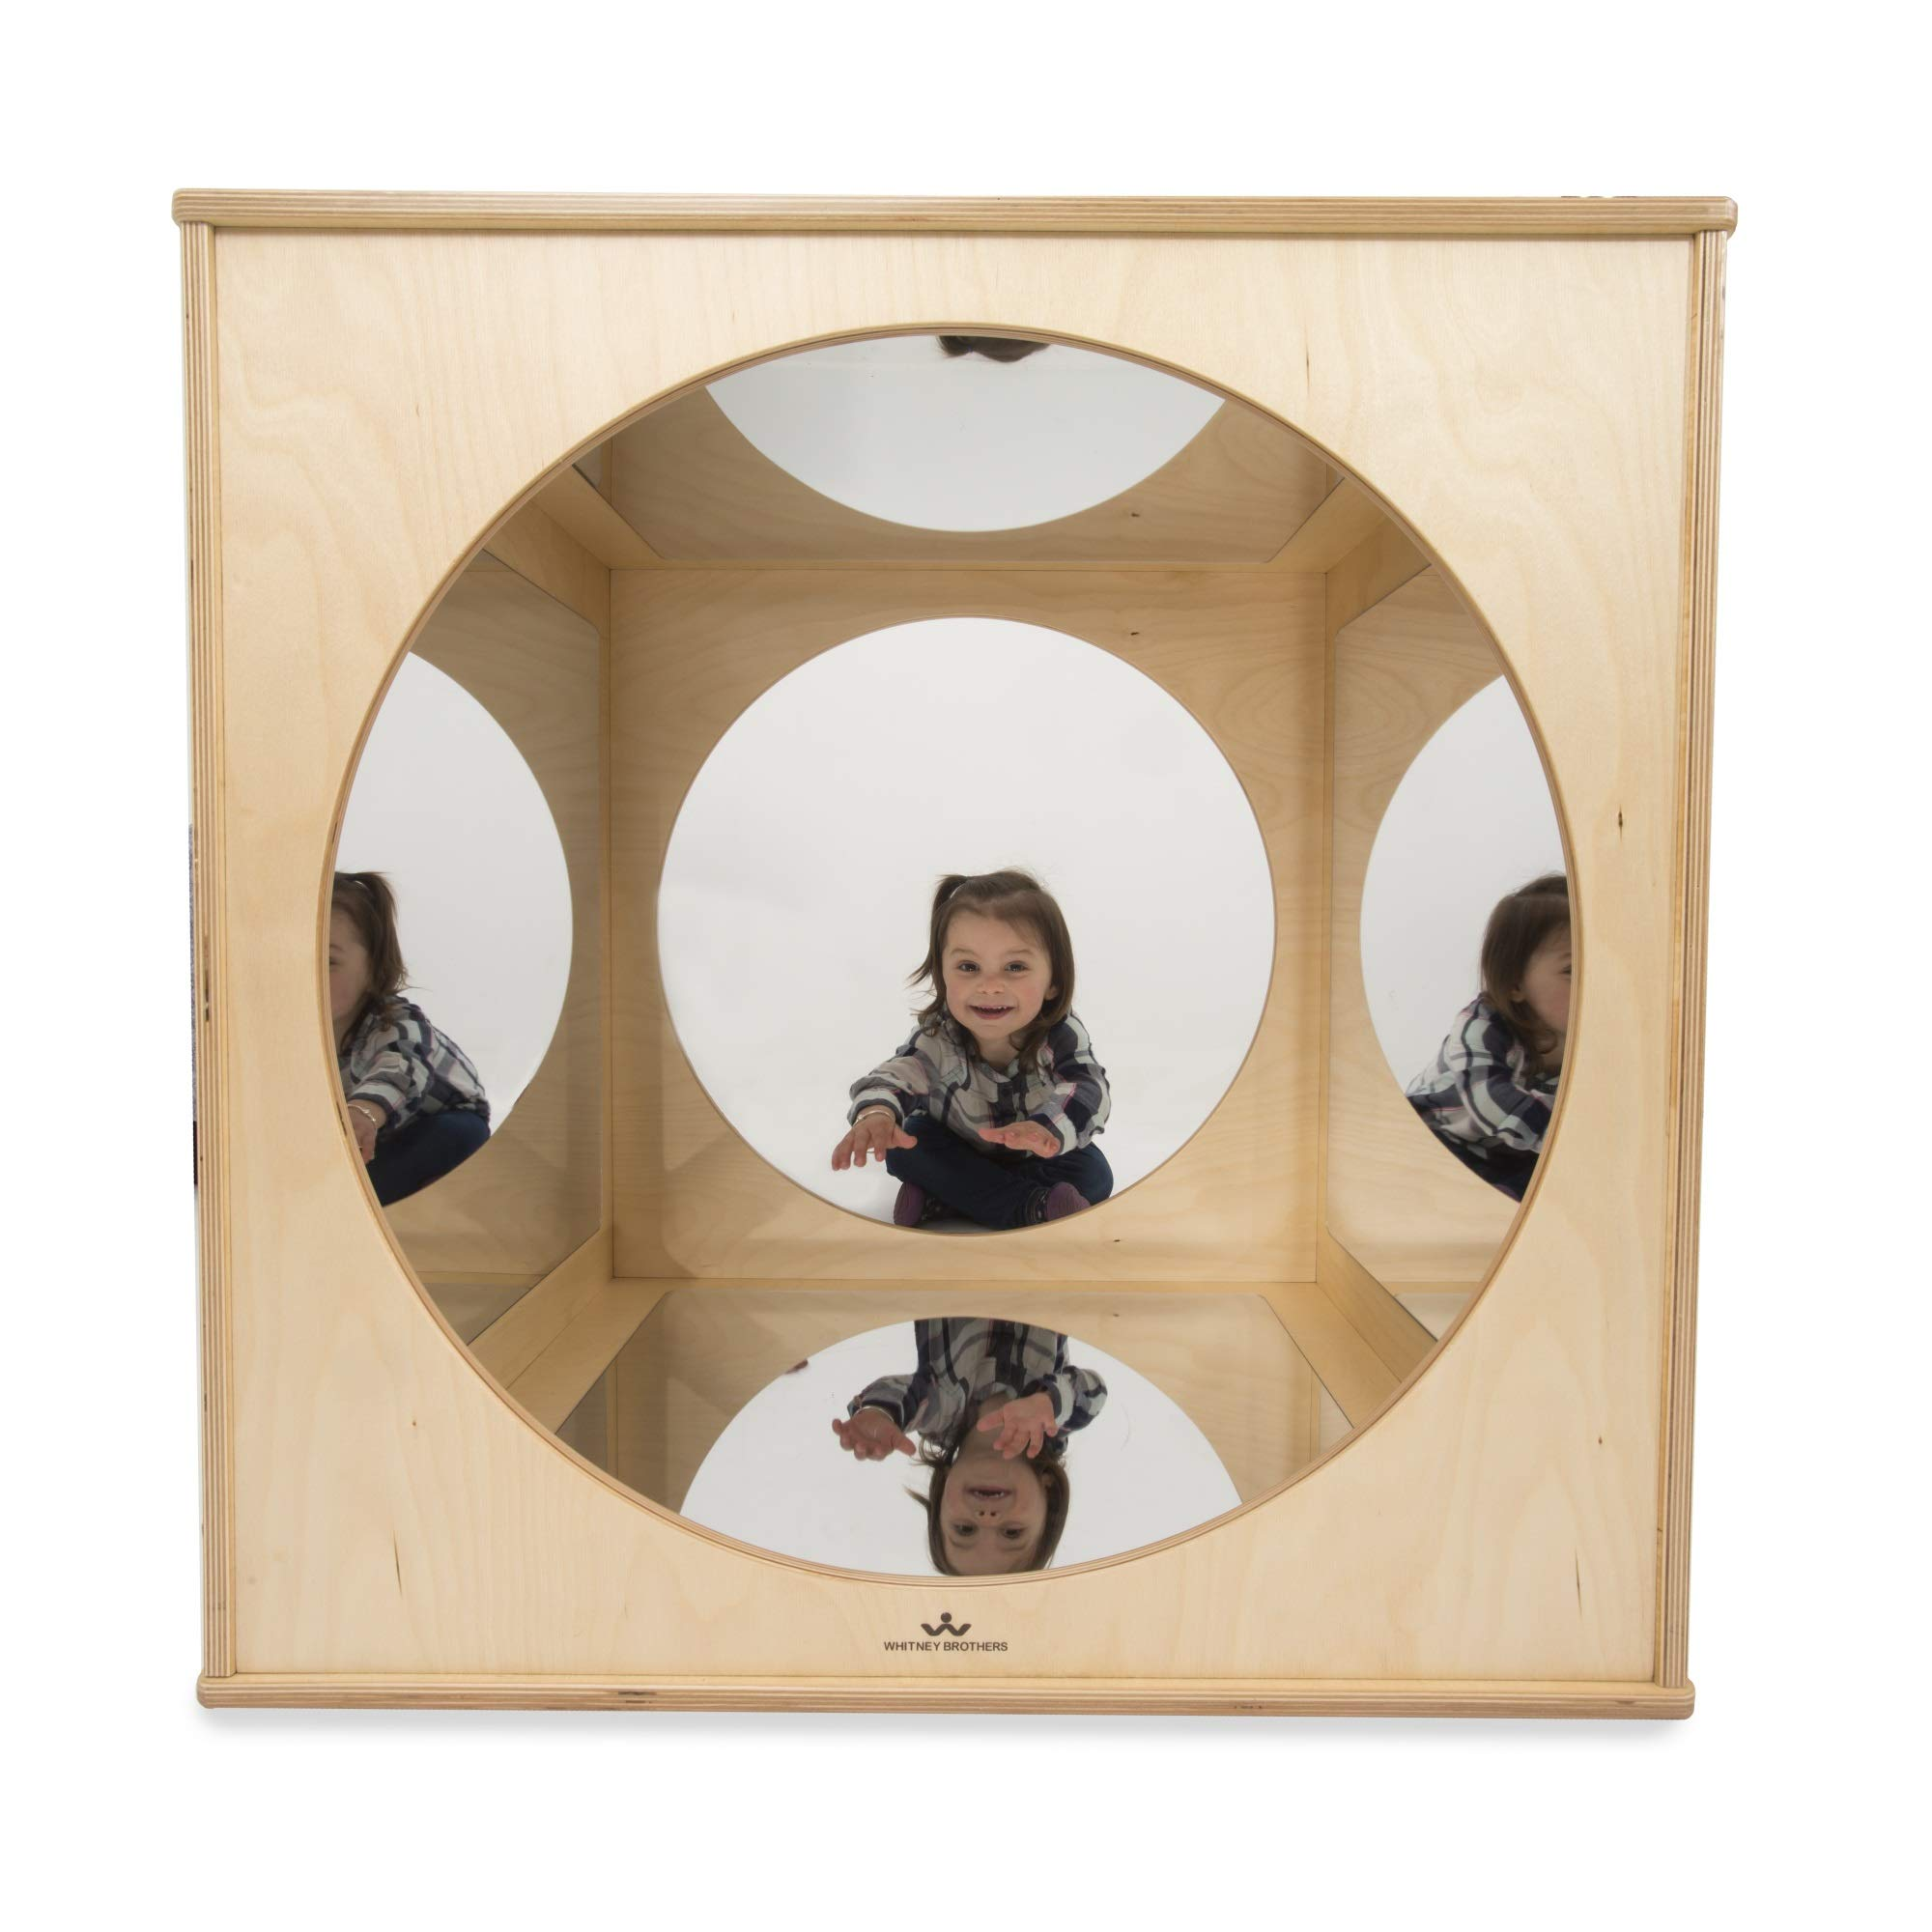 Whitney Brothers WB1846 Kaleidoscope Play House Cube Natural UV